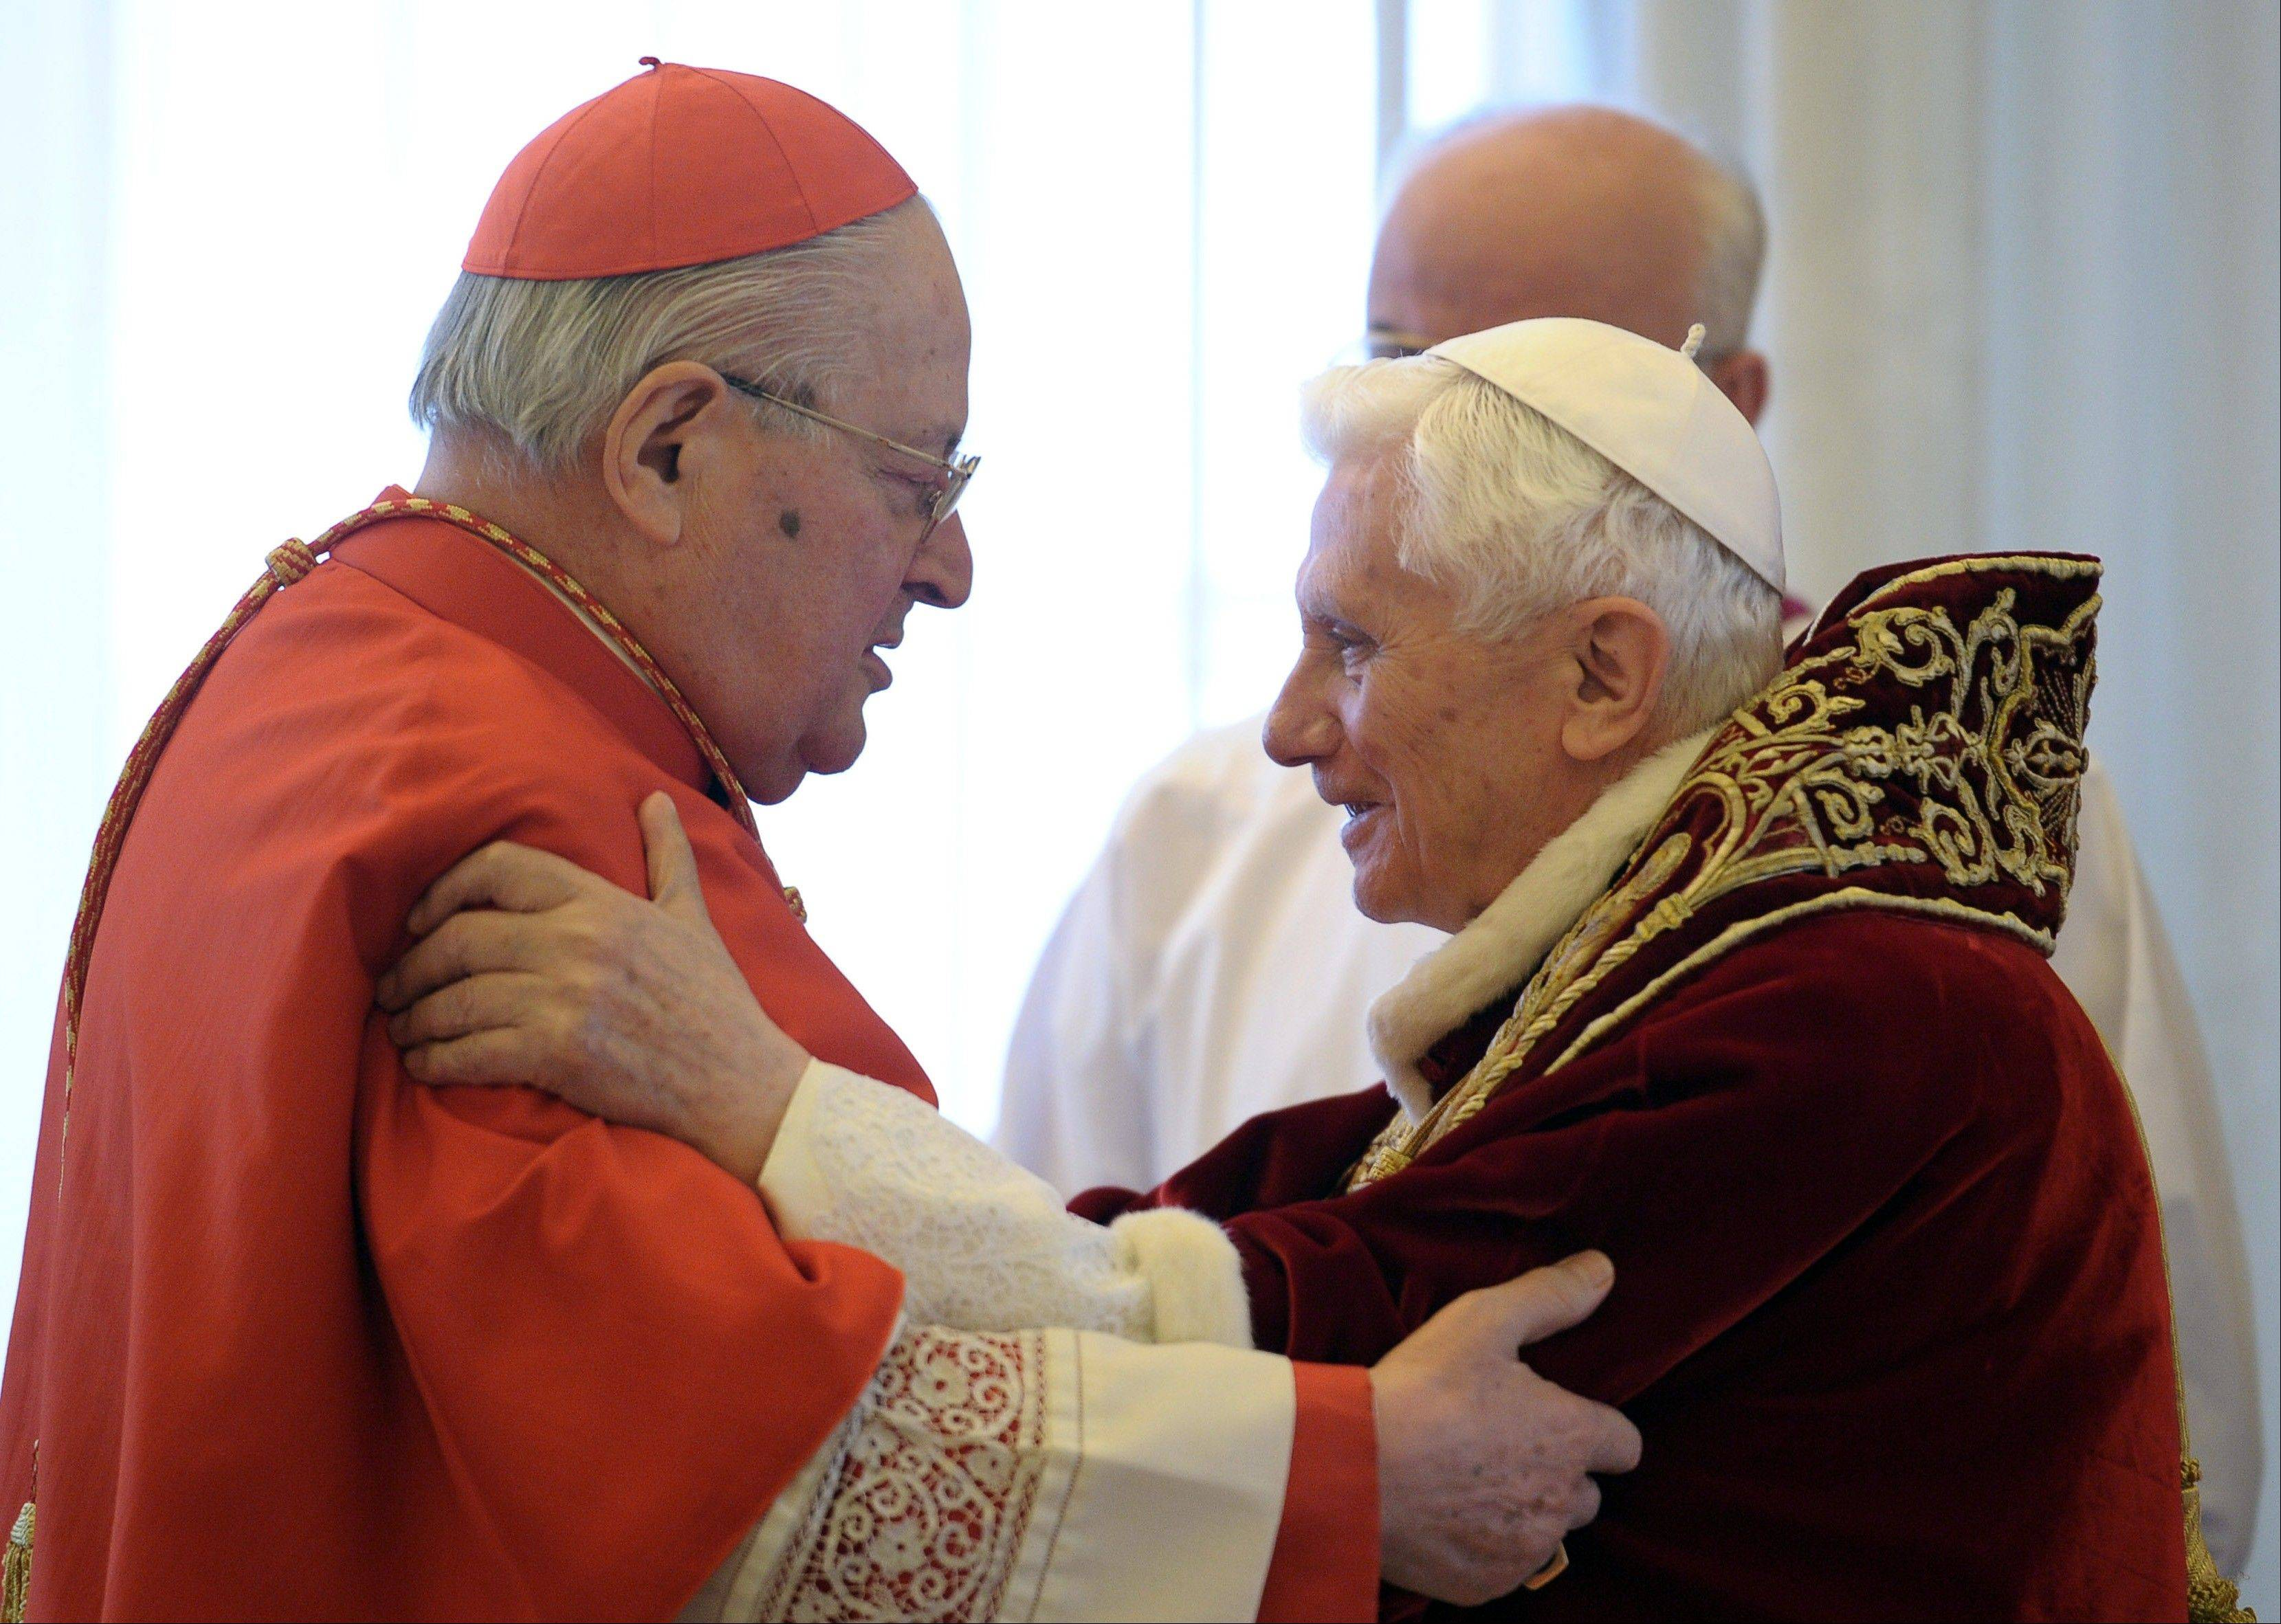 Pope Benedict XVI, right, and Cardinal Angelo Sodano, Dean of the College of Cardinals, hug each other after the pontiff announced Monday during the meeting of Vatican cardinals that he would resign on Feb. 28.